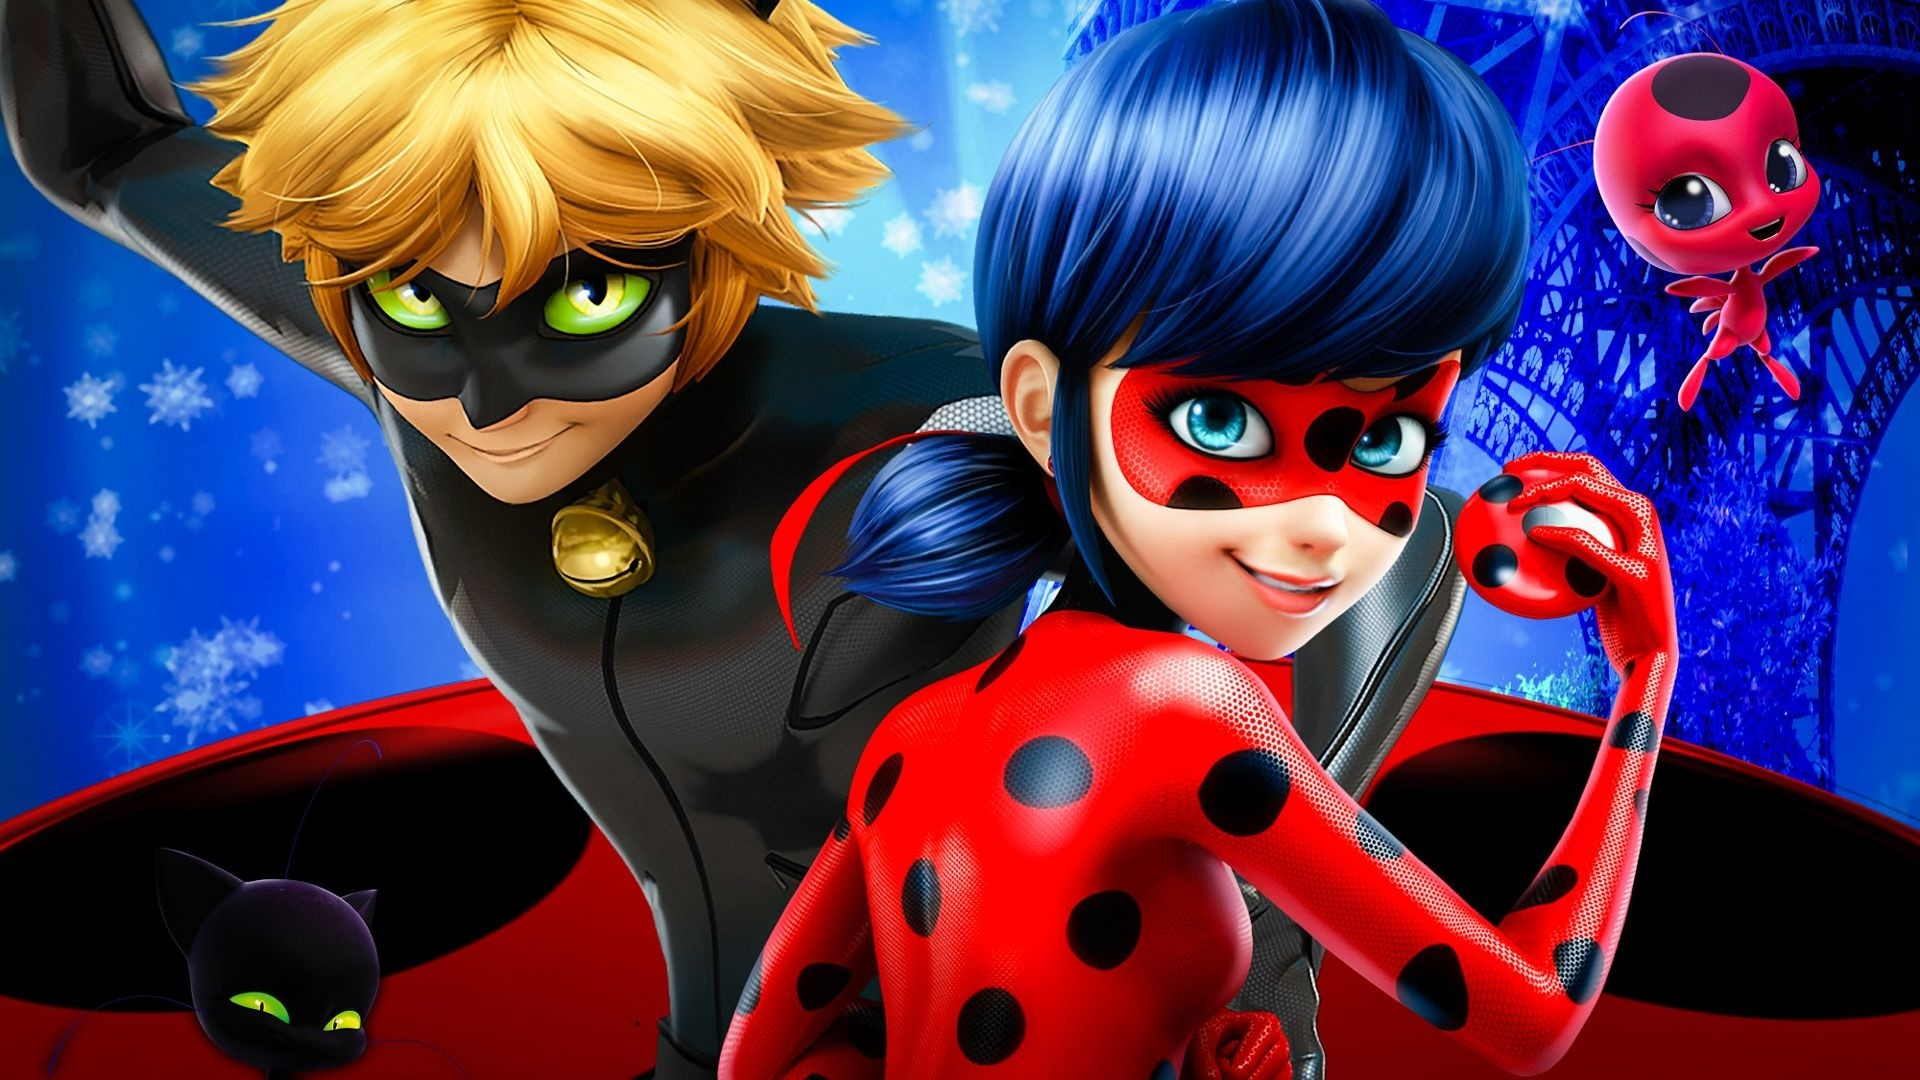 Miraculous Ladybug Wallpaper image hd